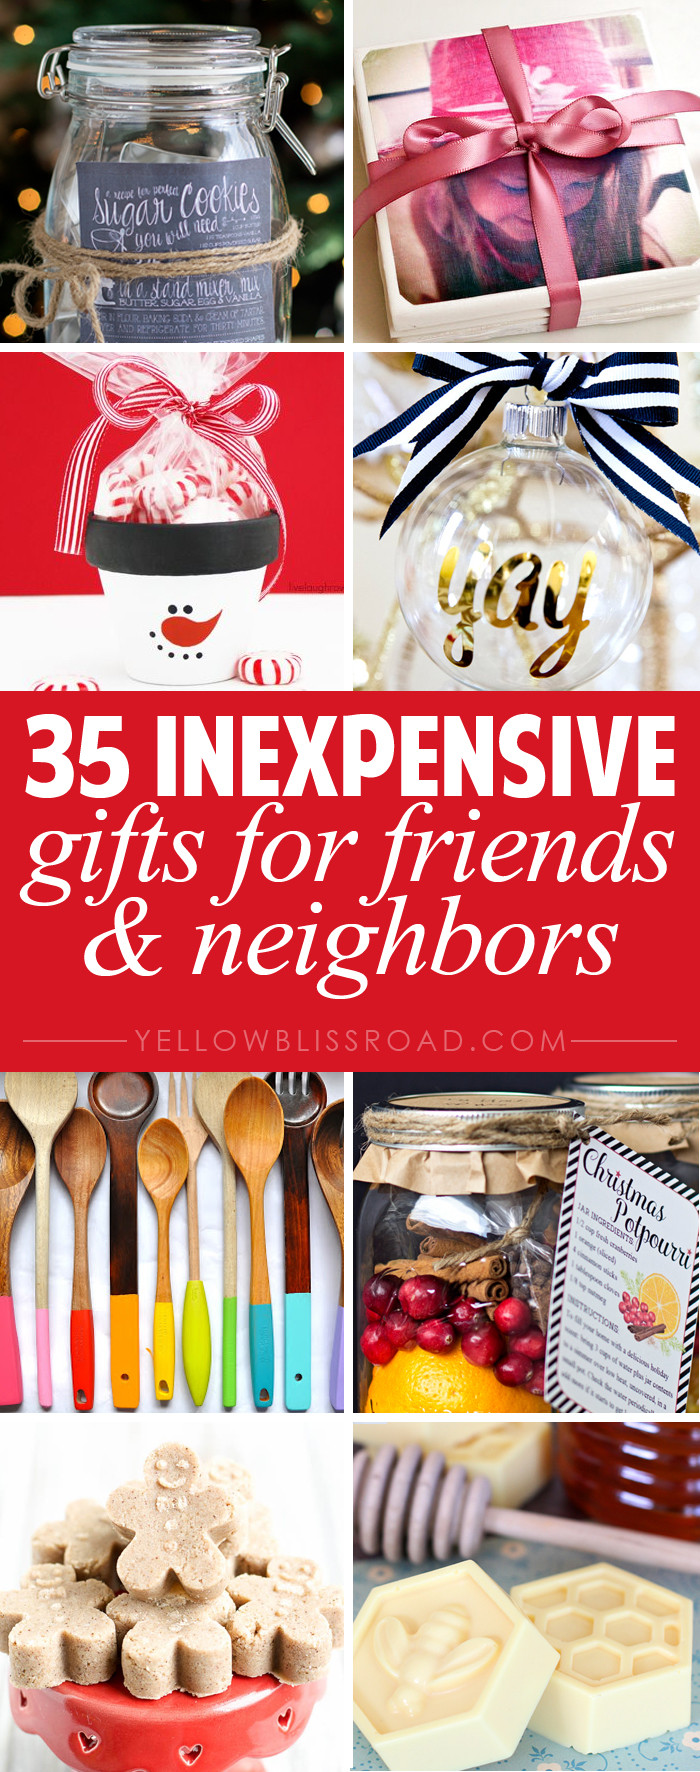 Best ideas about Gift Ideas Friends . Save or Pin 35 Gift Ideas for Neighbors and Friends Yellow Bliss Road Now.